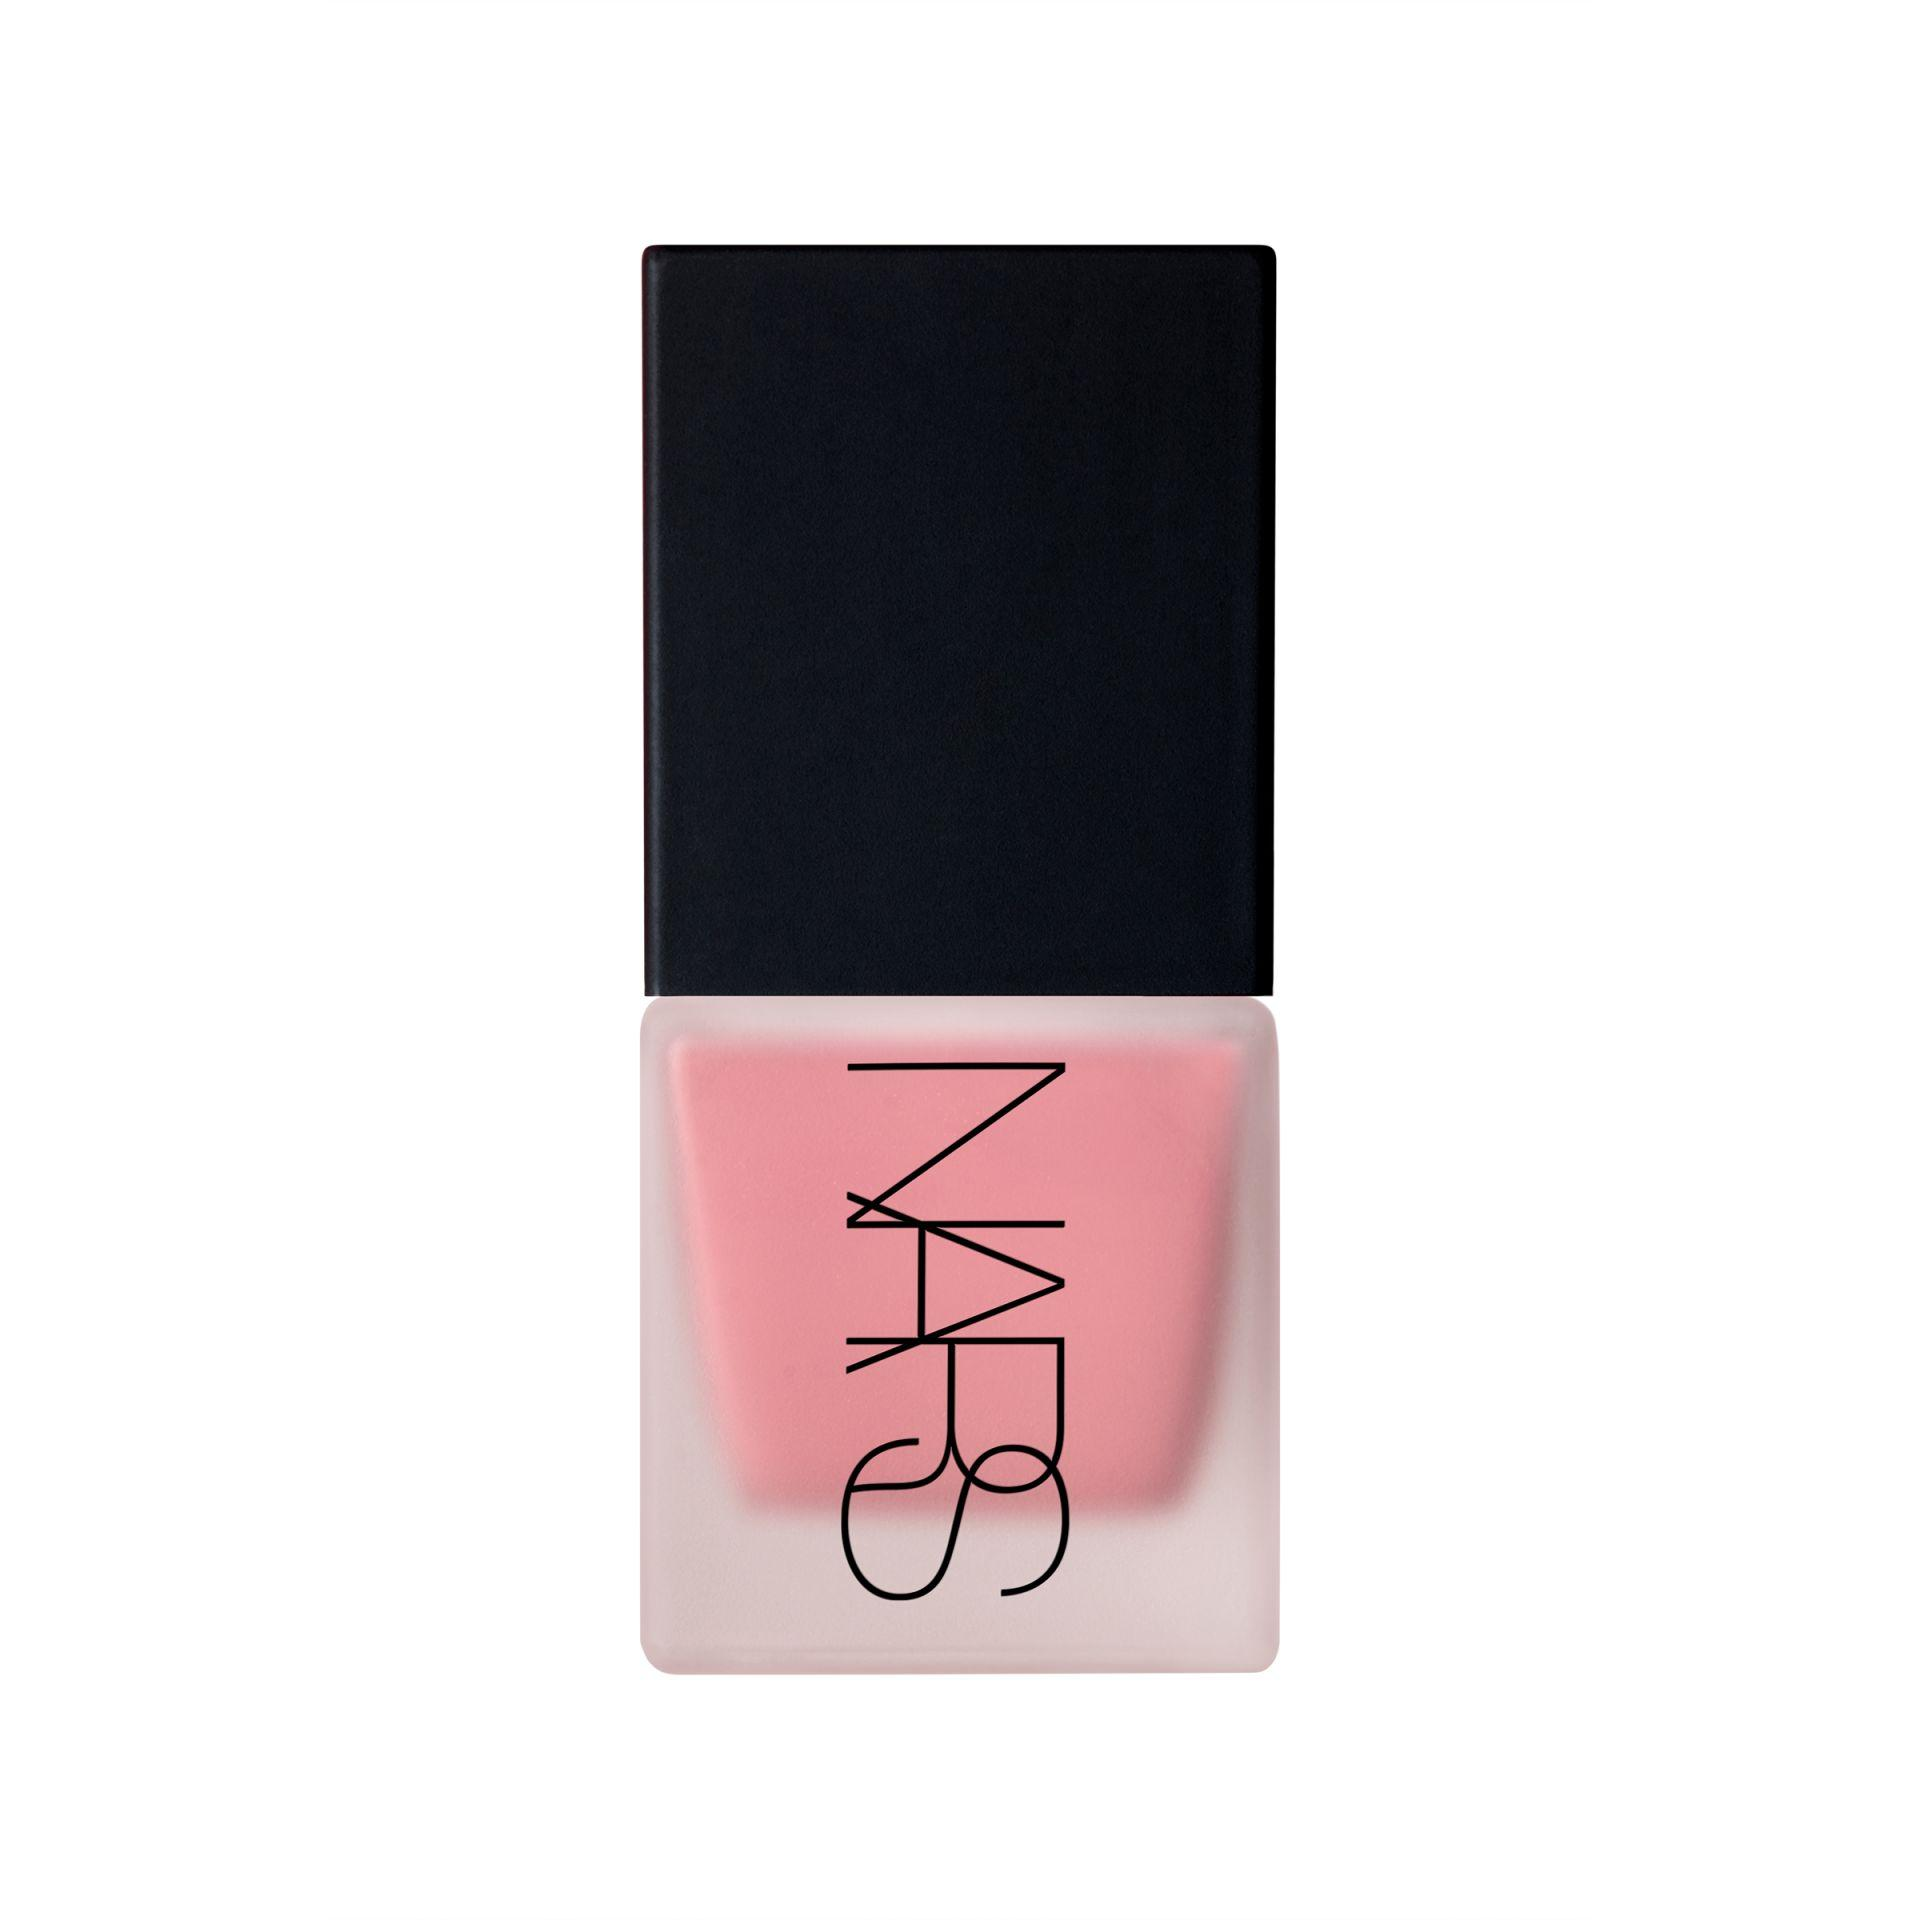 NARS Orgasm Liquid Blush - jpeg